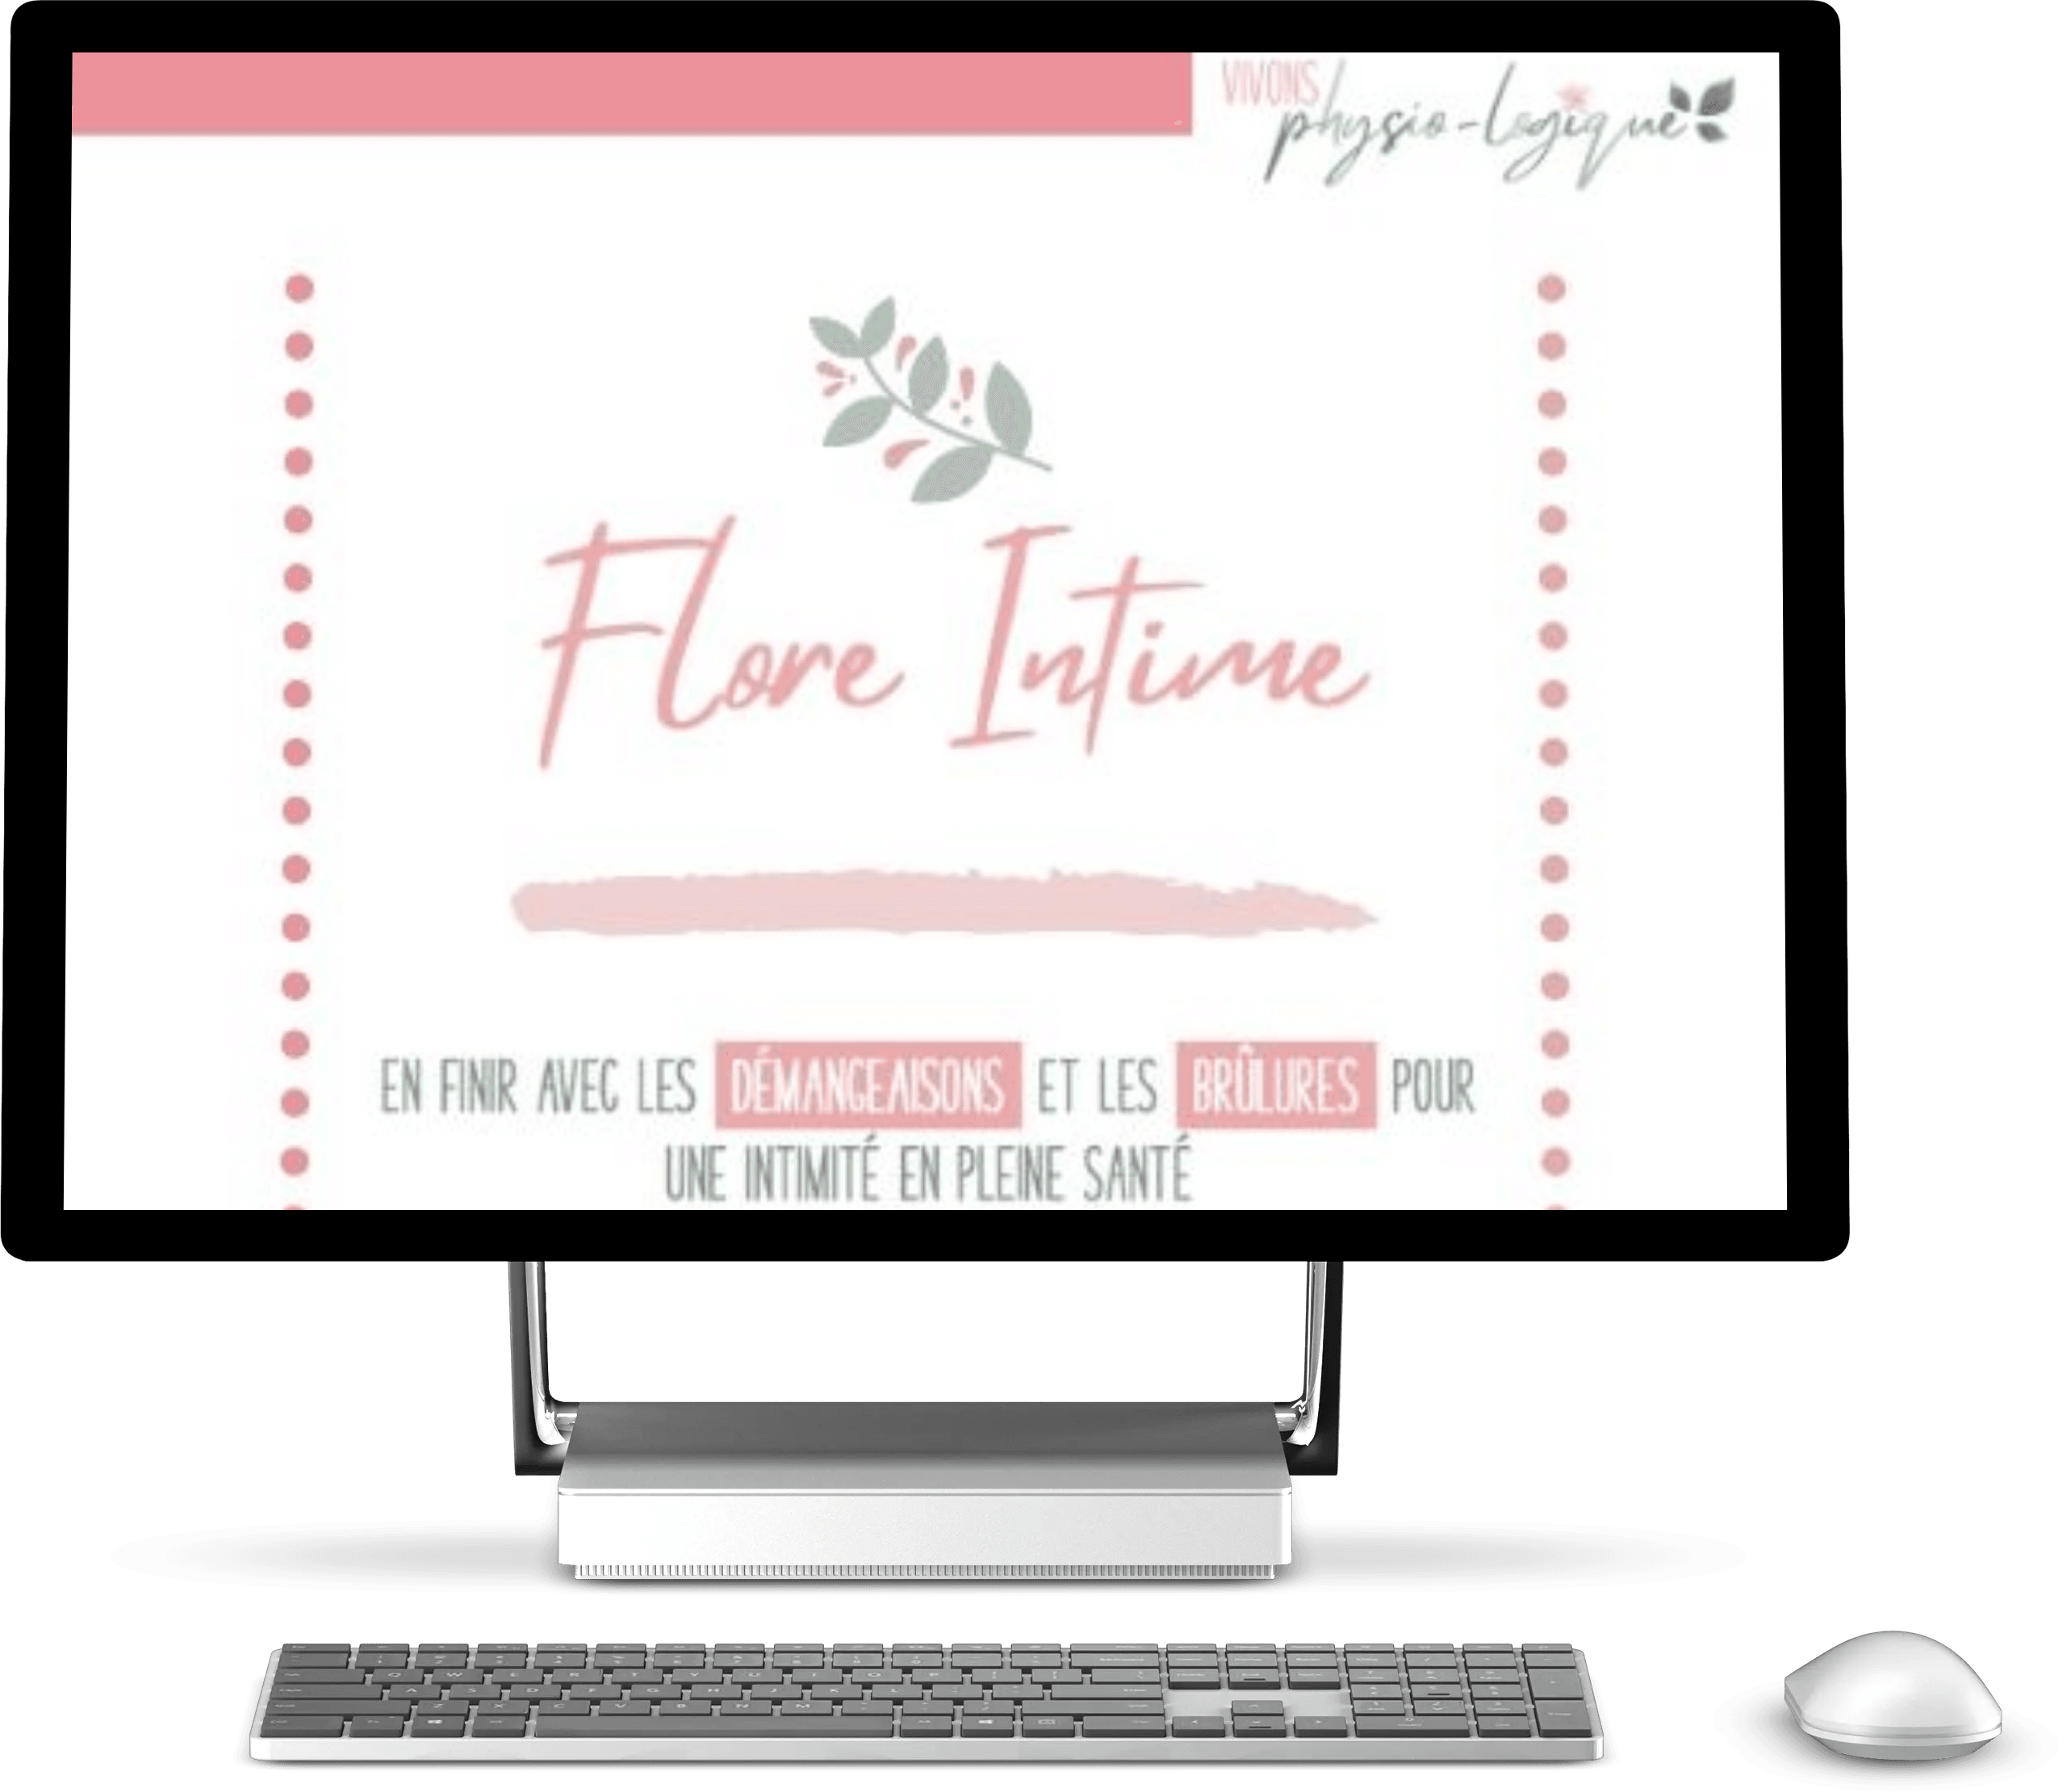 Formation Flore intime